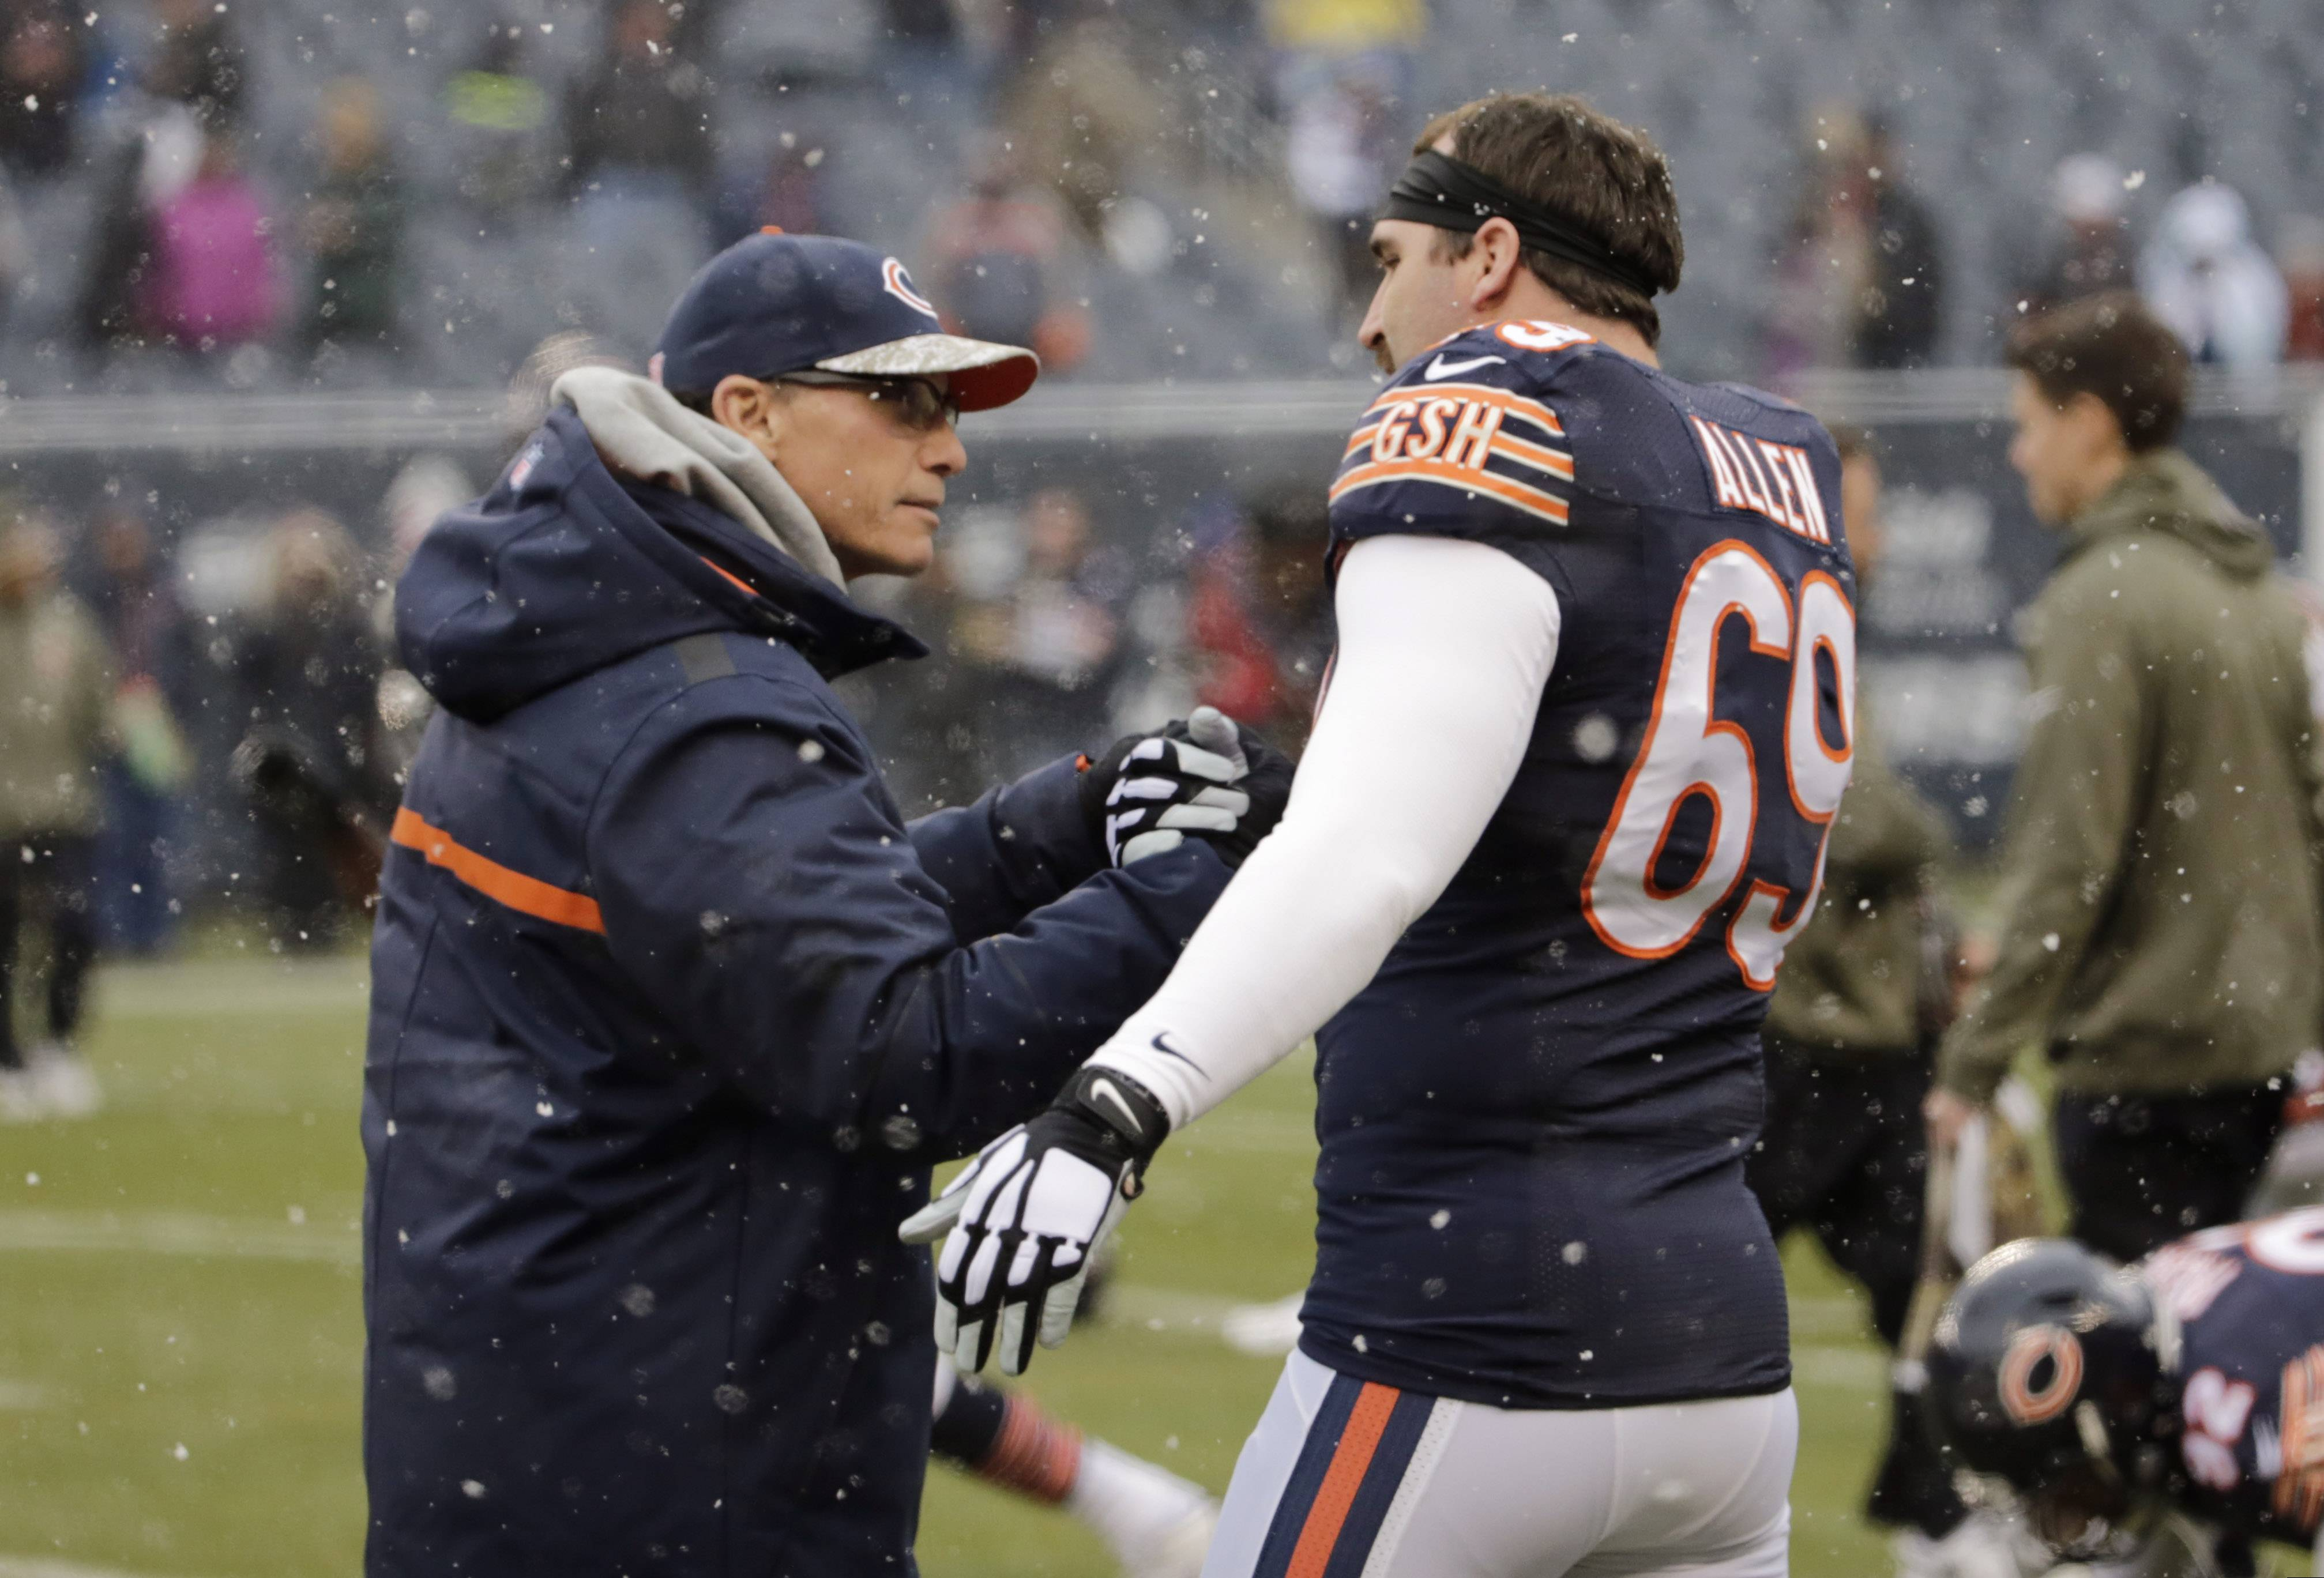 You'd think Bears players would want to play as hard as they possibly can for Marc Trestman because I'm pretty sure they don't know how good they have it right now.